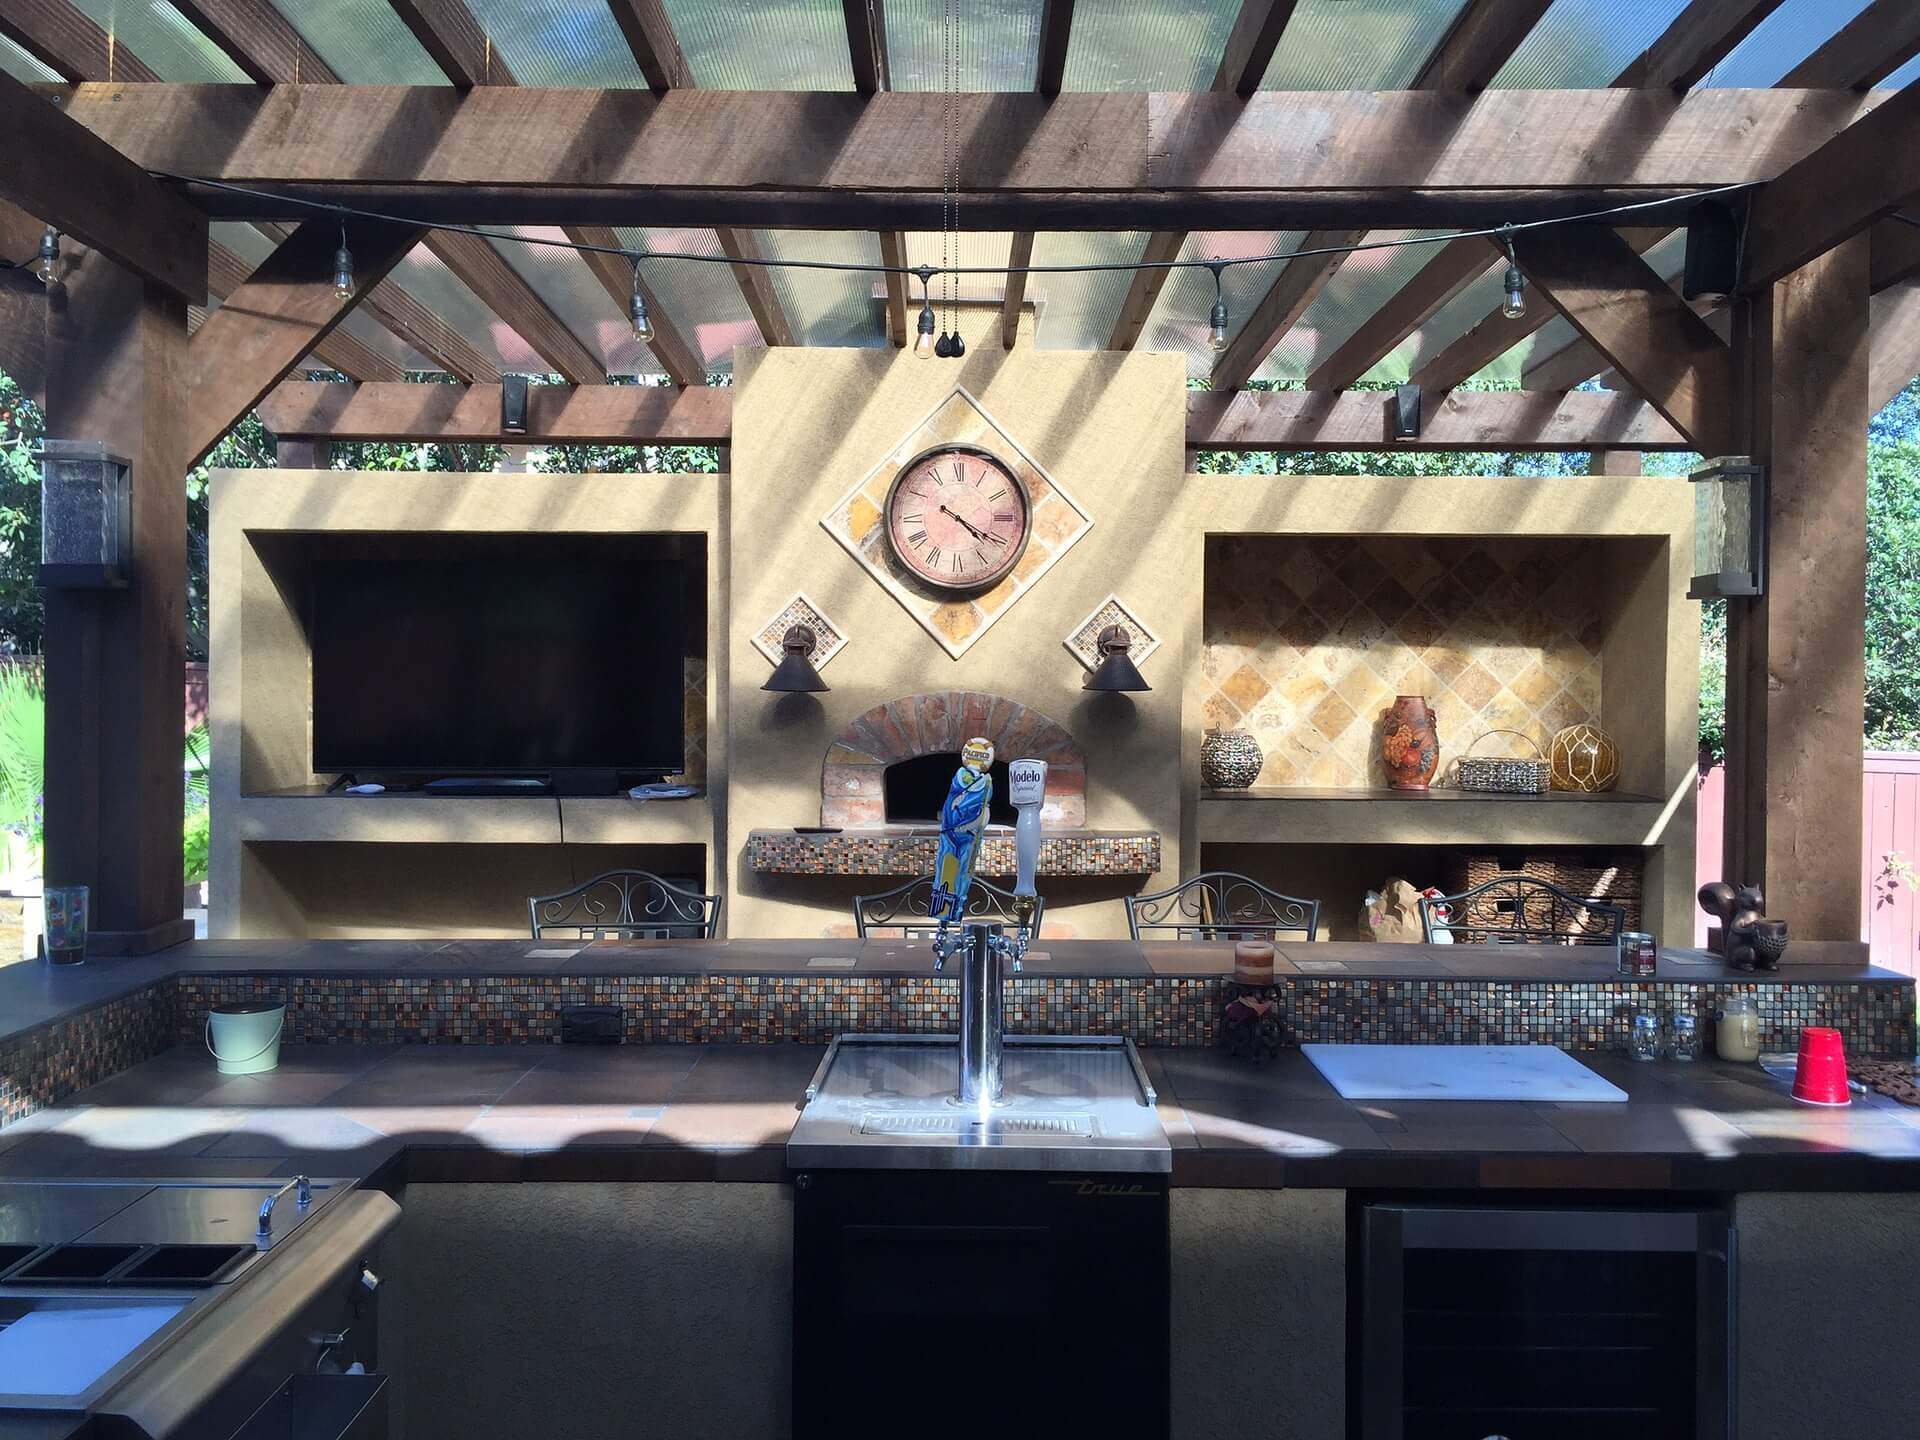 Outdoor Kitchens - SoFlo Kitchen Remodeling & Custom Cabinet Installation - backsplashes, flooring, countertops, outdoor patio